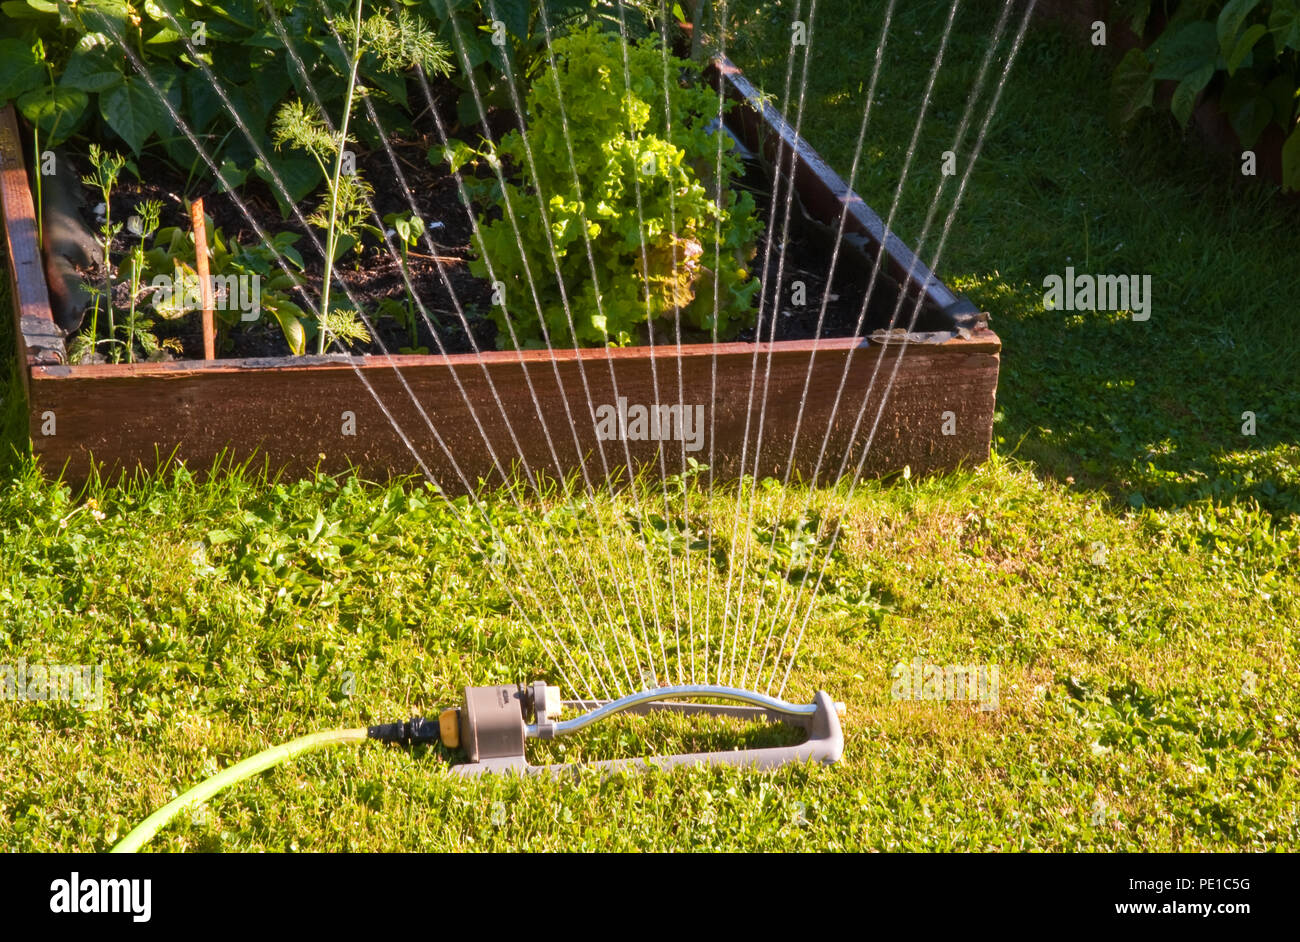 Oscillating sprinkler - Stock Image